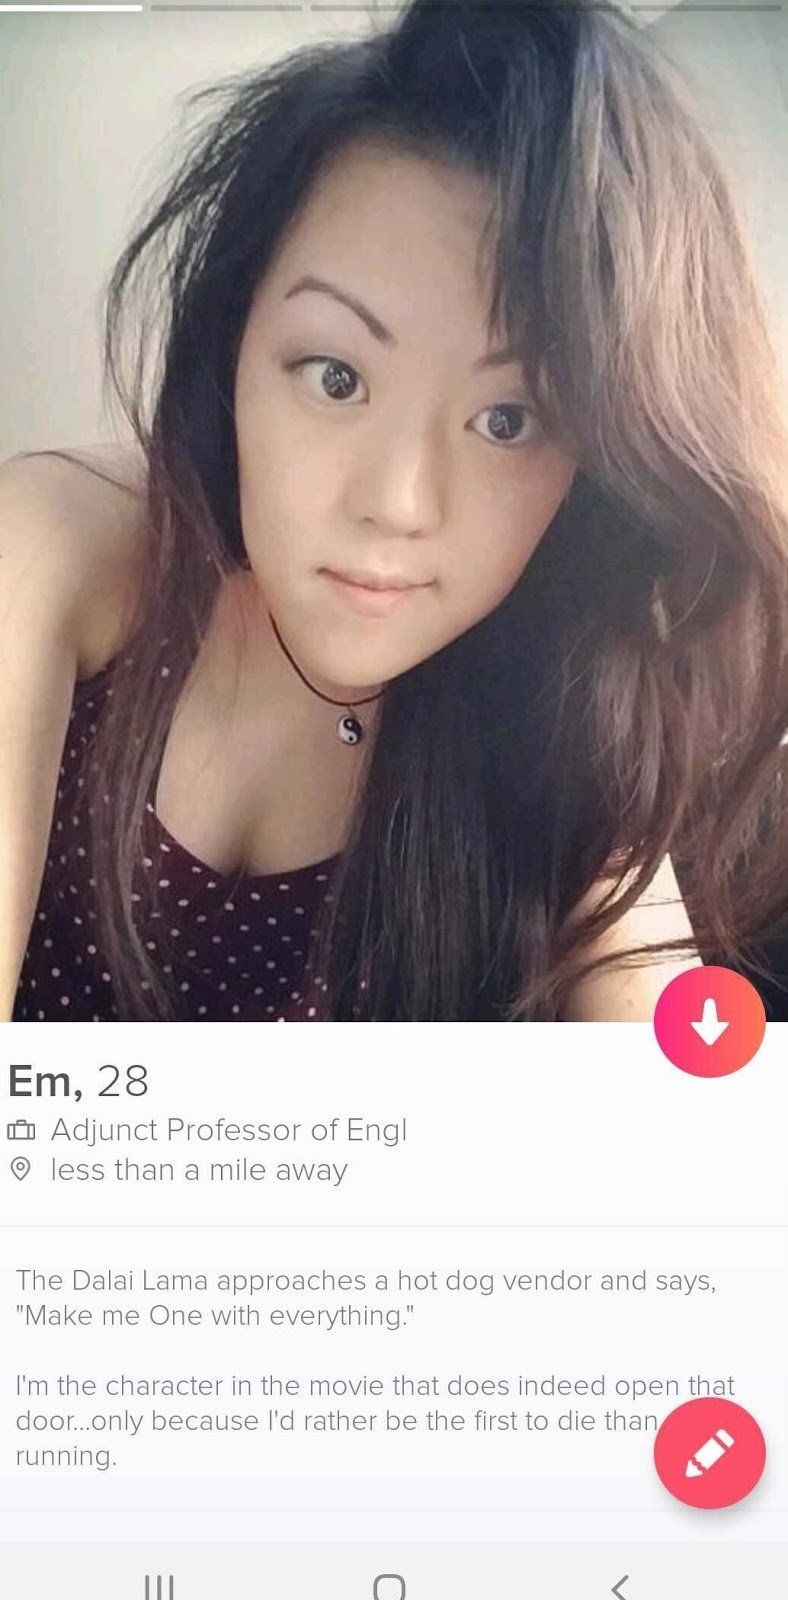 I'm an Asian Woman on Tinder: An Analysis of My Inbox - Popdust